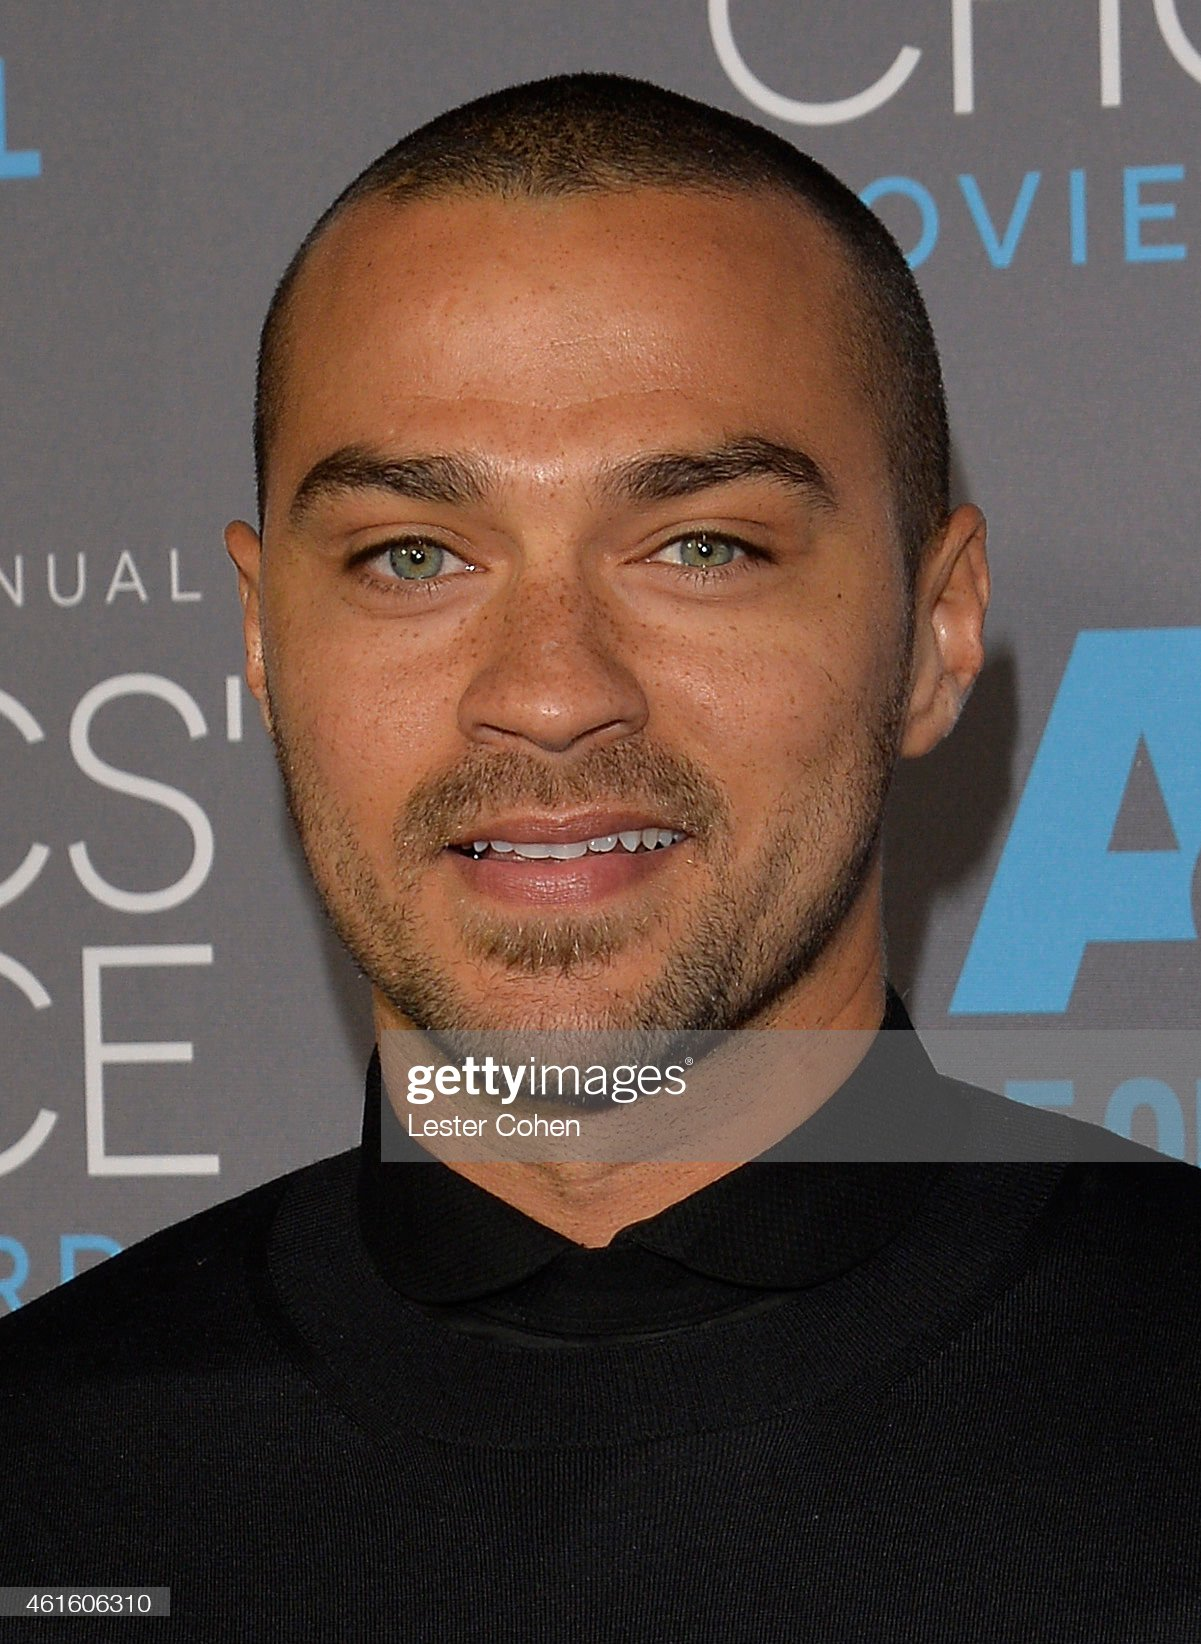 Ojos verdes - Famosas y famosos con los ojos de color VERDE Actor-jesse-williams-attends-the-20th-annual-critics-choice-movie-at-picture-id461606310?s=2048x2048